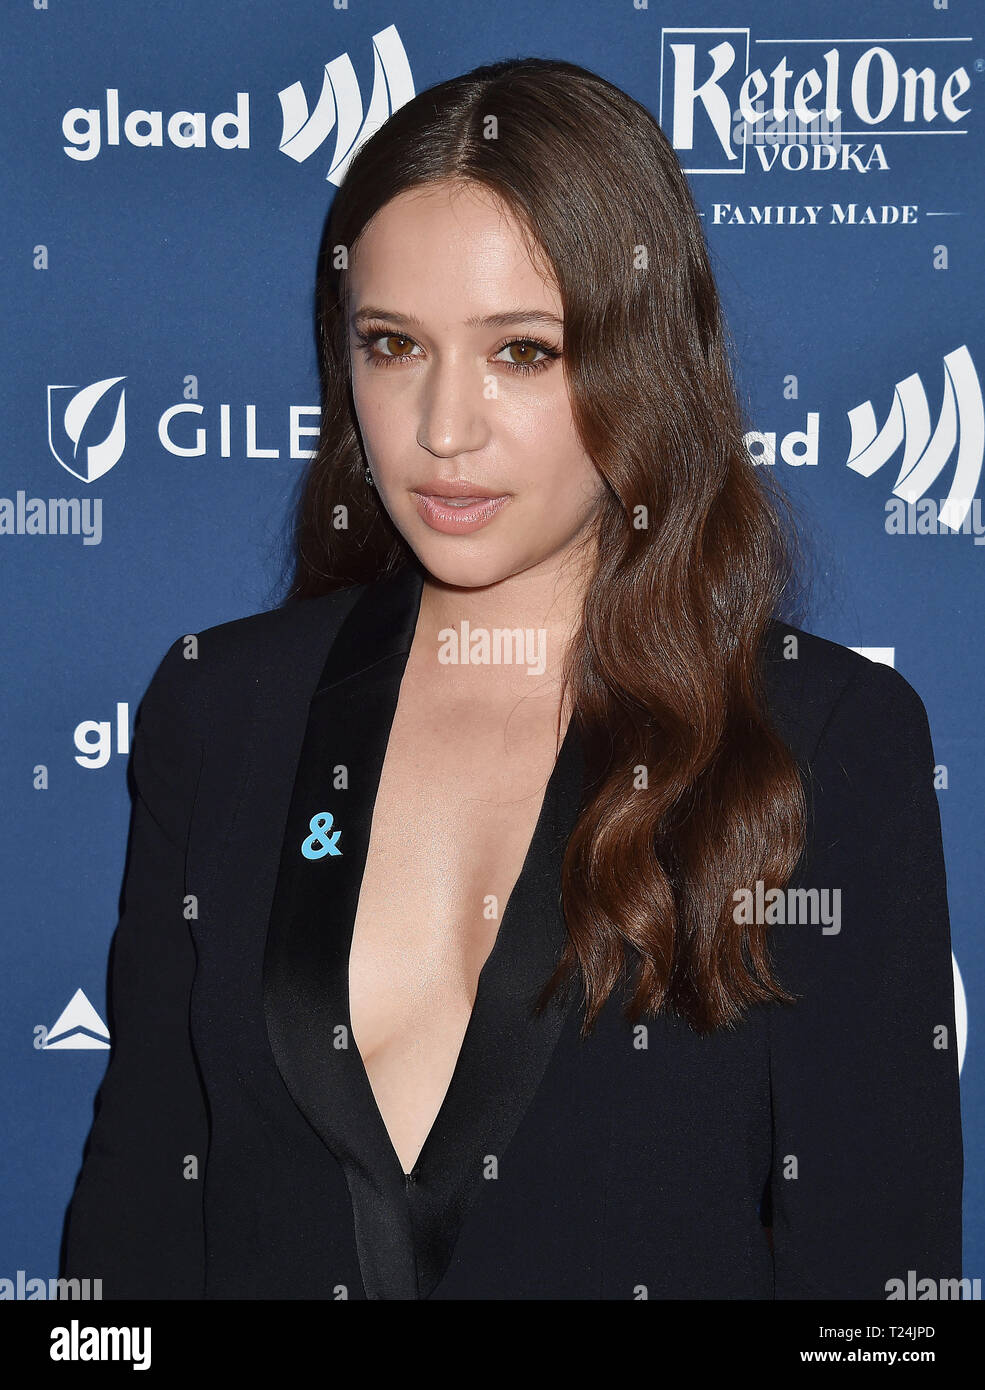 BEVERLY HILLS, CA - MARCH 28: Gideon Adlon attends the 30th Annual GLAAD Media Awards at The Beverly Hilton Hotel on March 28, 2019 in Beverly Hills, California. - Stock Image